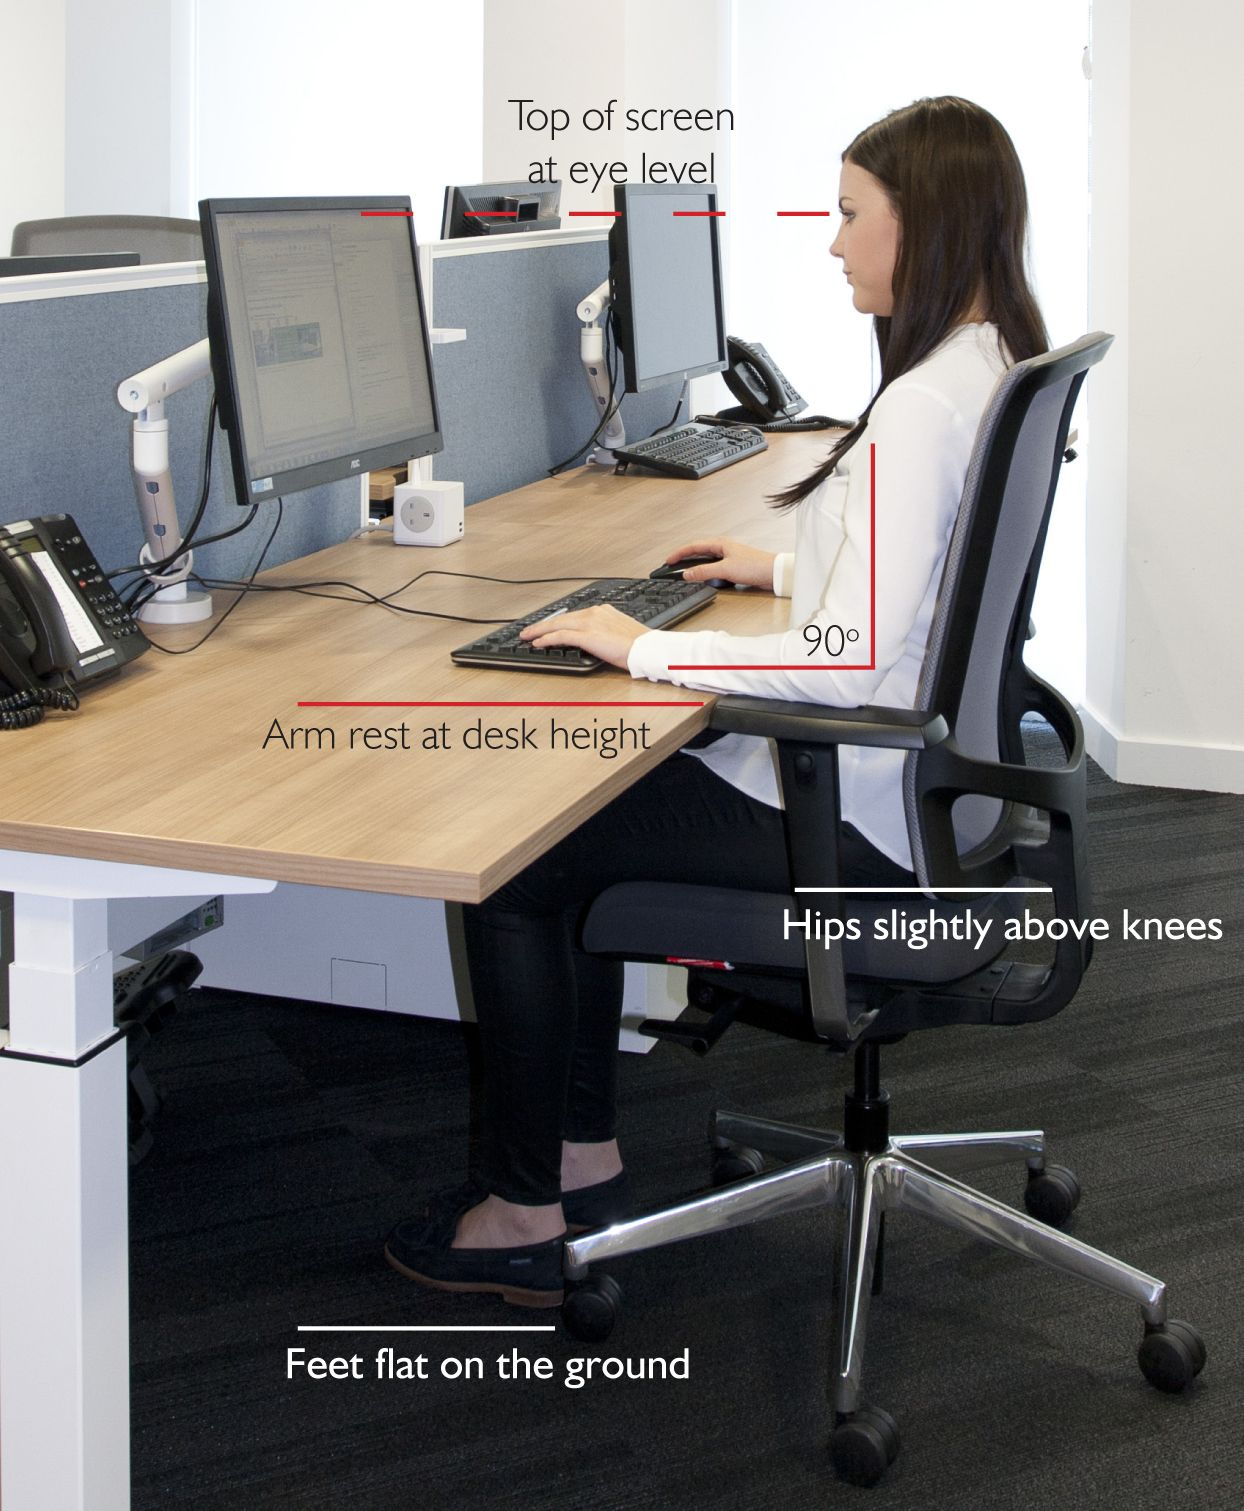 What Is The Standard Desk Height For Best Posture And Ergonomics Desk Height Standard Desk Height Desk